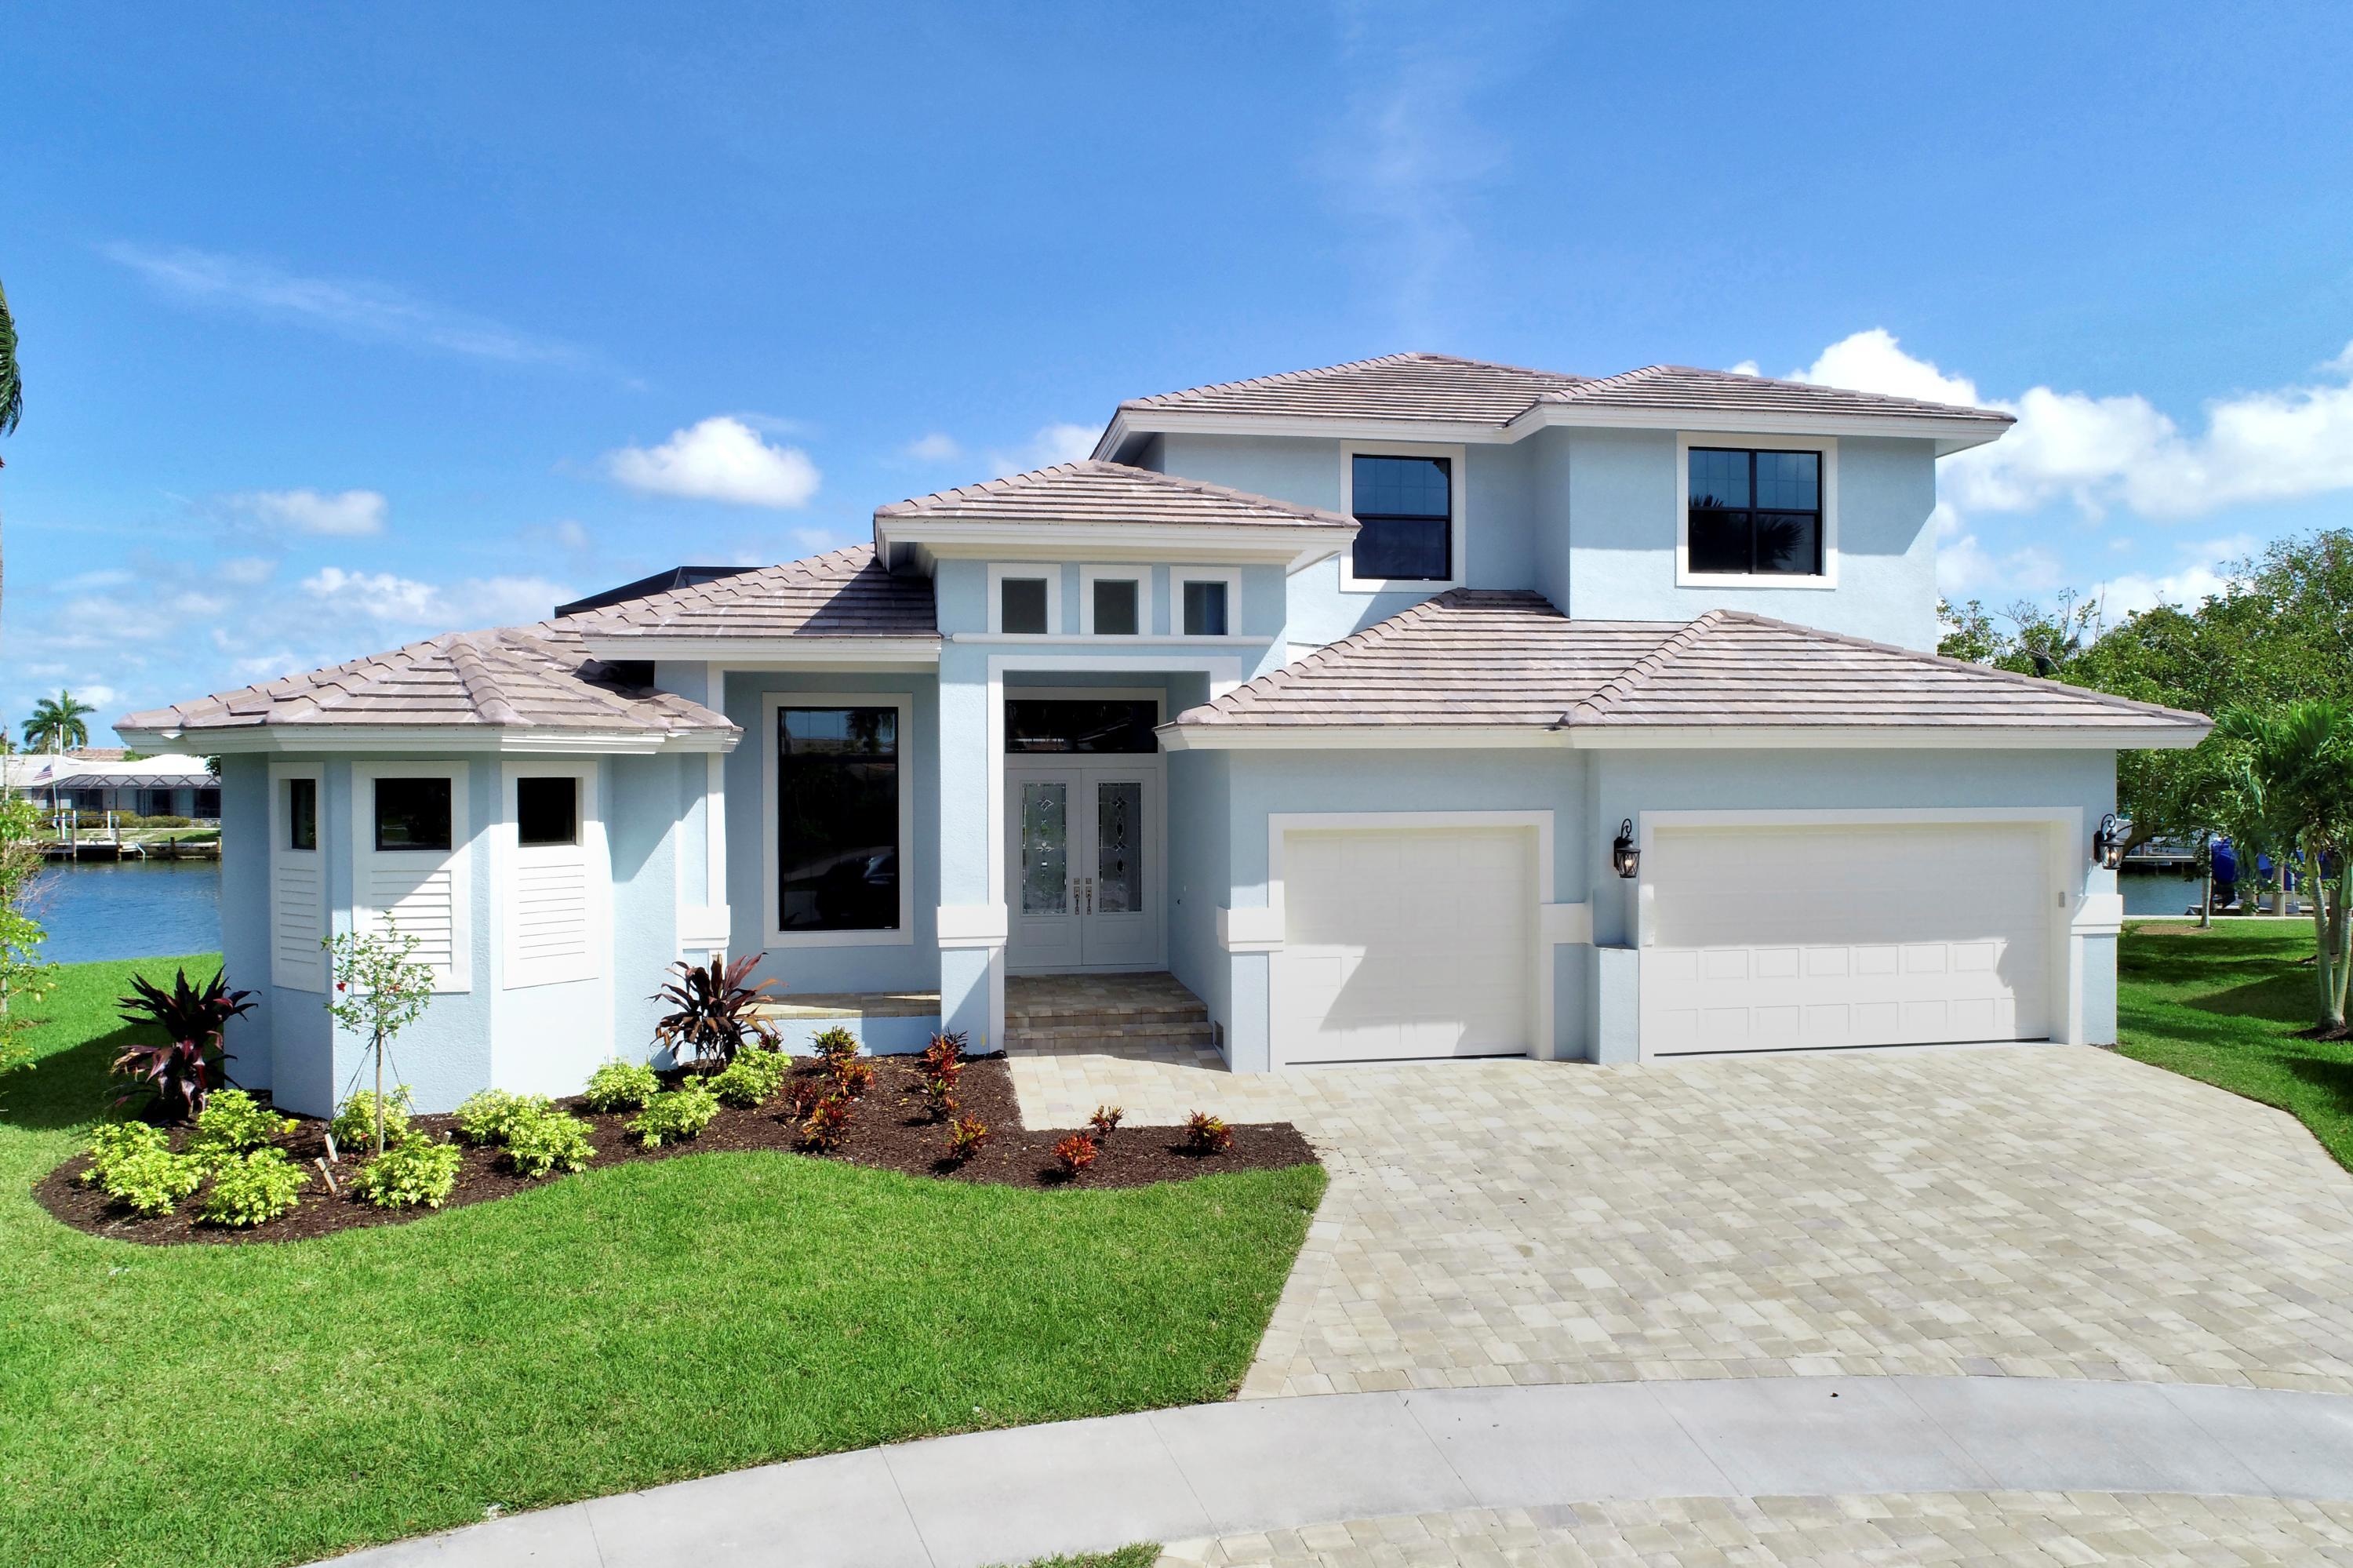 Brand New Custom built home with over 3200 square feet under air in one of the best areas of the Island!  Only a 10 minute walking distance to Resident's Beach!  Enjoy your morning breakfast at Doreen's Cup of Joe just a 4 minute walking distance away.  Boating indirect access under the new higher Collier Bridge allows larger boats through Smokehouse and Collier Bay.  80 feet of water frontage with new seawall and view of converging canal.  4 bedrooms with two master suites, 3 and half baths plus large den, large bonus storage room, chef's kitchen, 2nd floor lanai enclosed outdoor balcony to enjoy converging canal view, home flows great with high ceilings all around and large open spaces.  3 zone A/C, 3 car garage with epoxy floors.  Enjoy the panoramic view lanai with outdoor summer kitchen, pool and spa surrounded by stunning shell stone to create the perfect outdoor lifestyle to enjoy the Marco Island Lifestyle!  Home is under construction at this time, but is running ahead of schedule to be completed Oct/Nov 2021, still a small window of time to make cosmetic choices, color of stone, indoor paint, and finishes to add your personal touch!